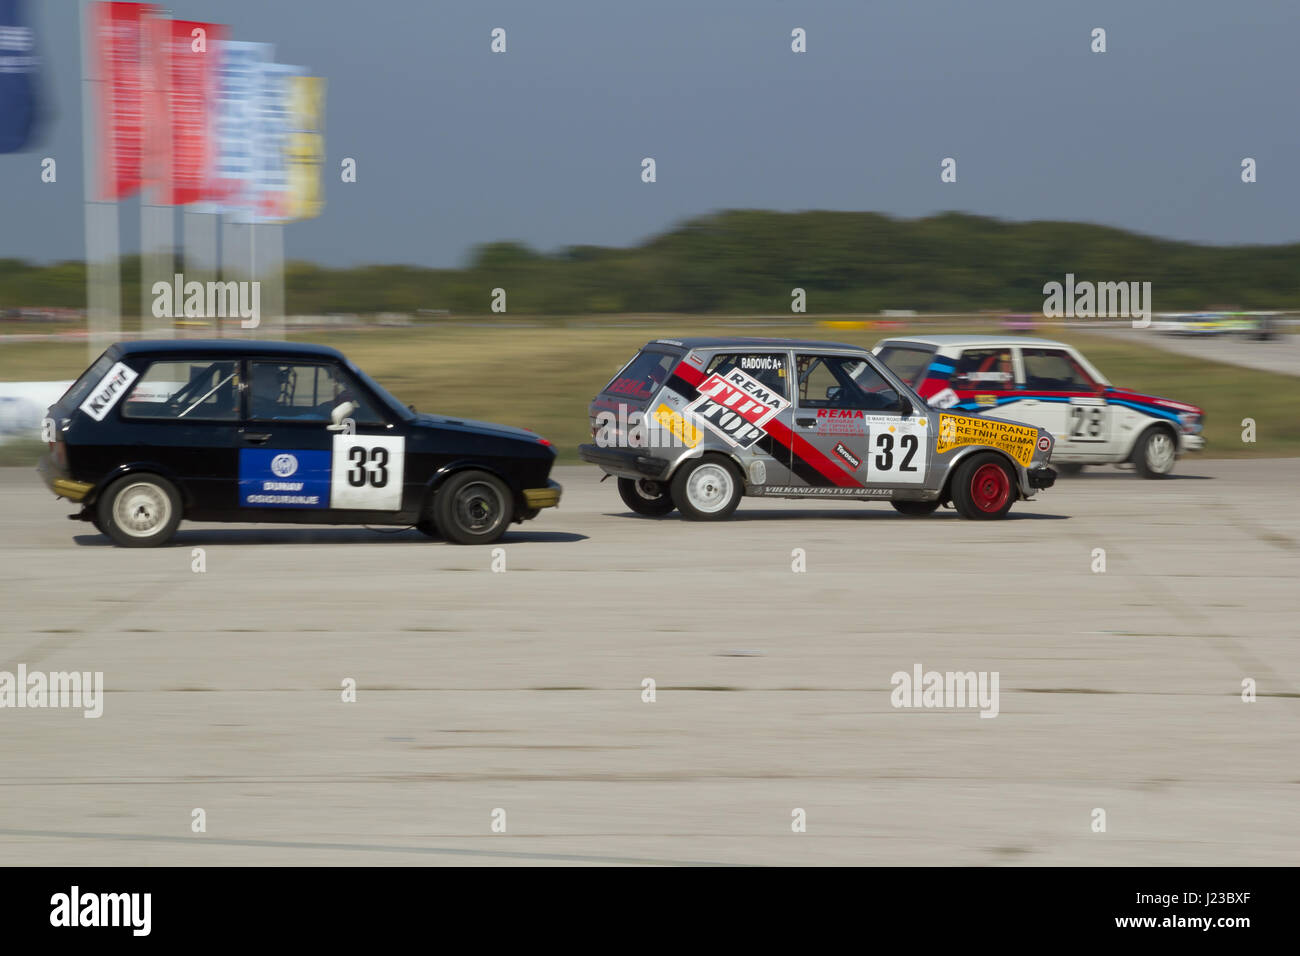 "Belgrad, Serbien, 24. September 2011: Car racing Meisterschaft ""EKO Nagrada 2011"", drei Jugo 55 Autos Stockbild"